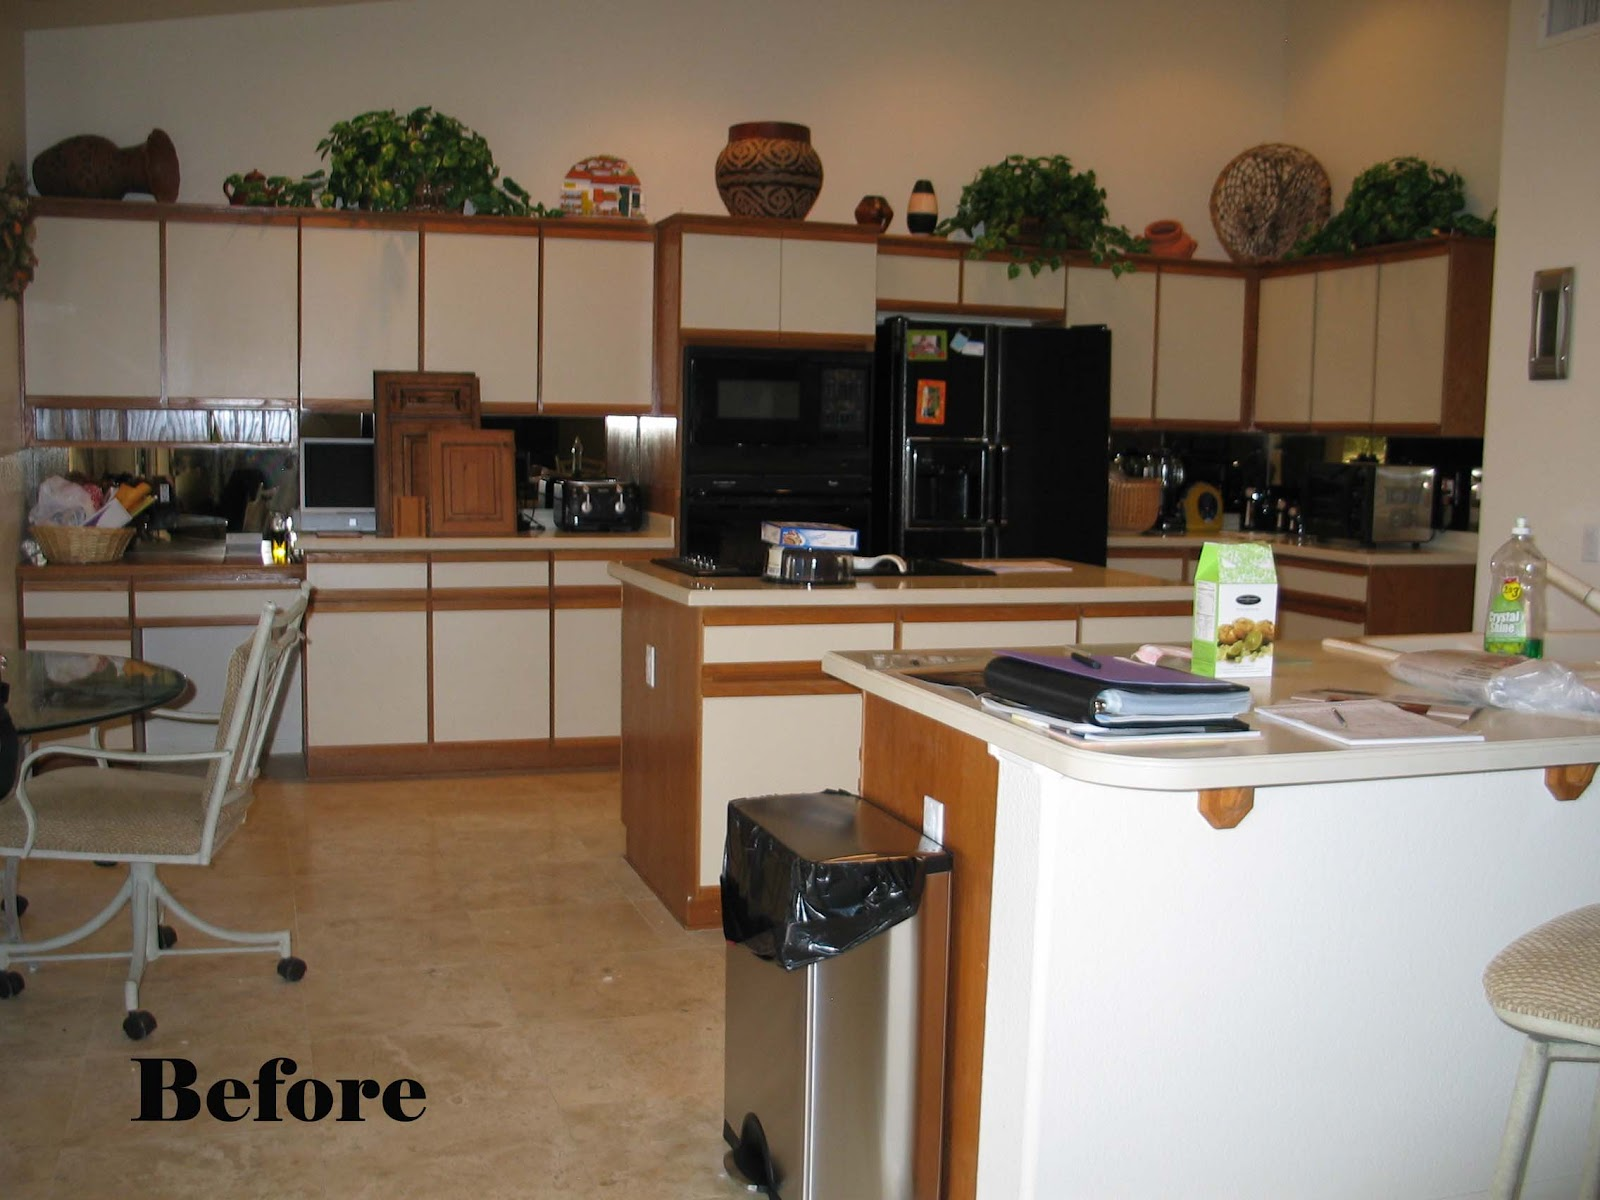 cabinet refacing easy and quick kitchen makeover option cabinets kitchen cabinet refacing Refacing Kitchen Cabinets